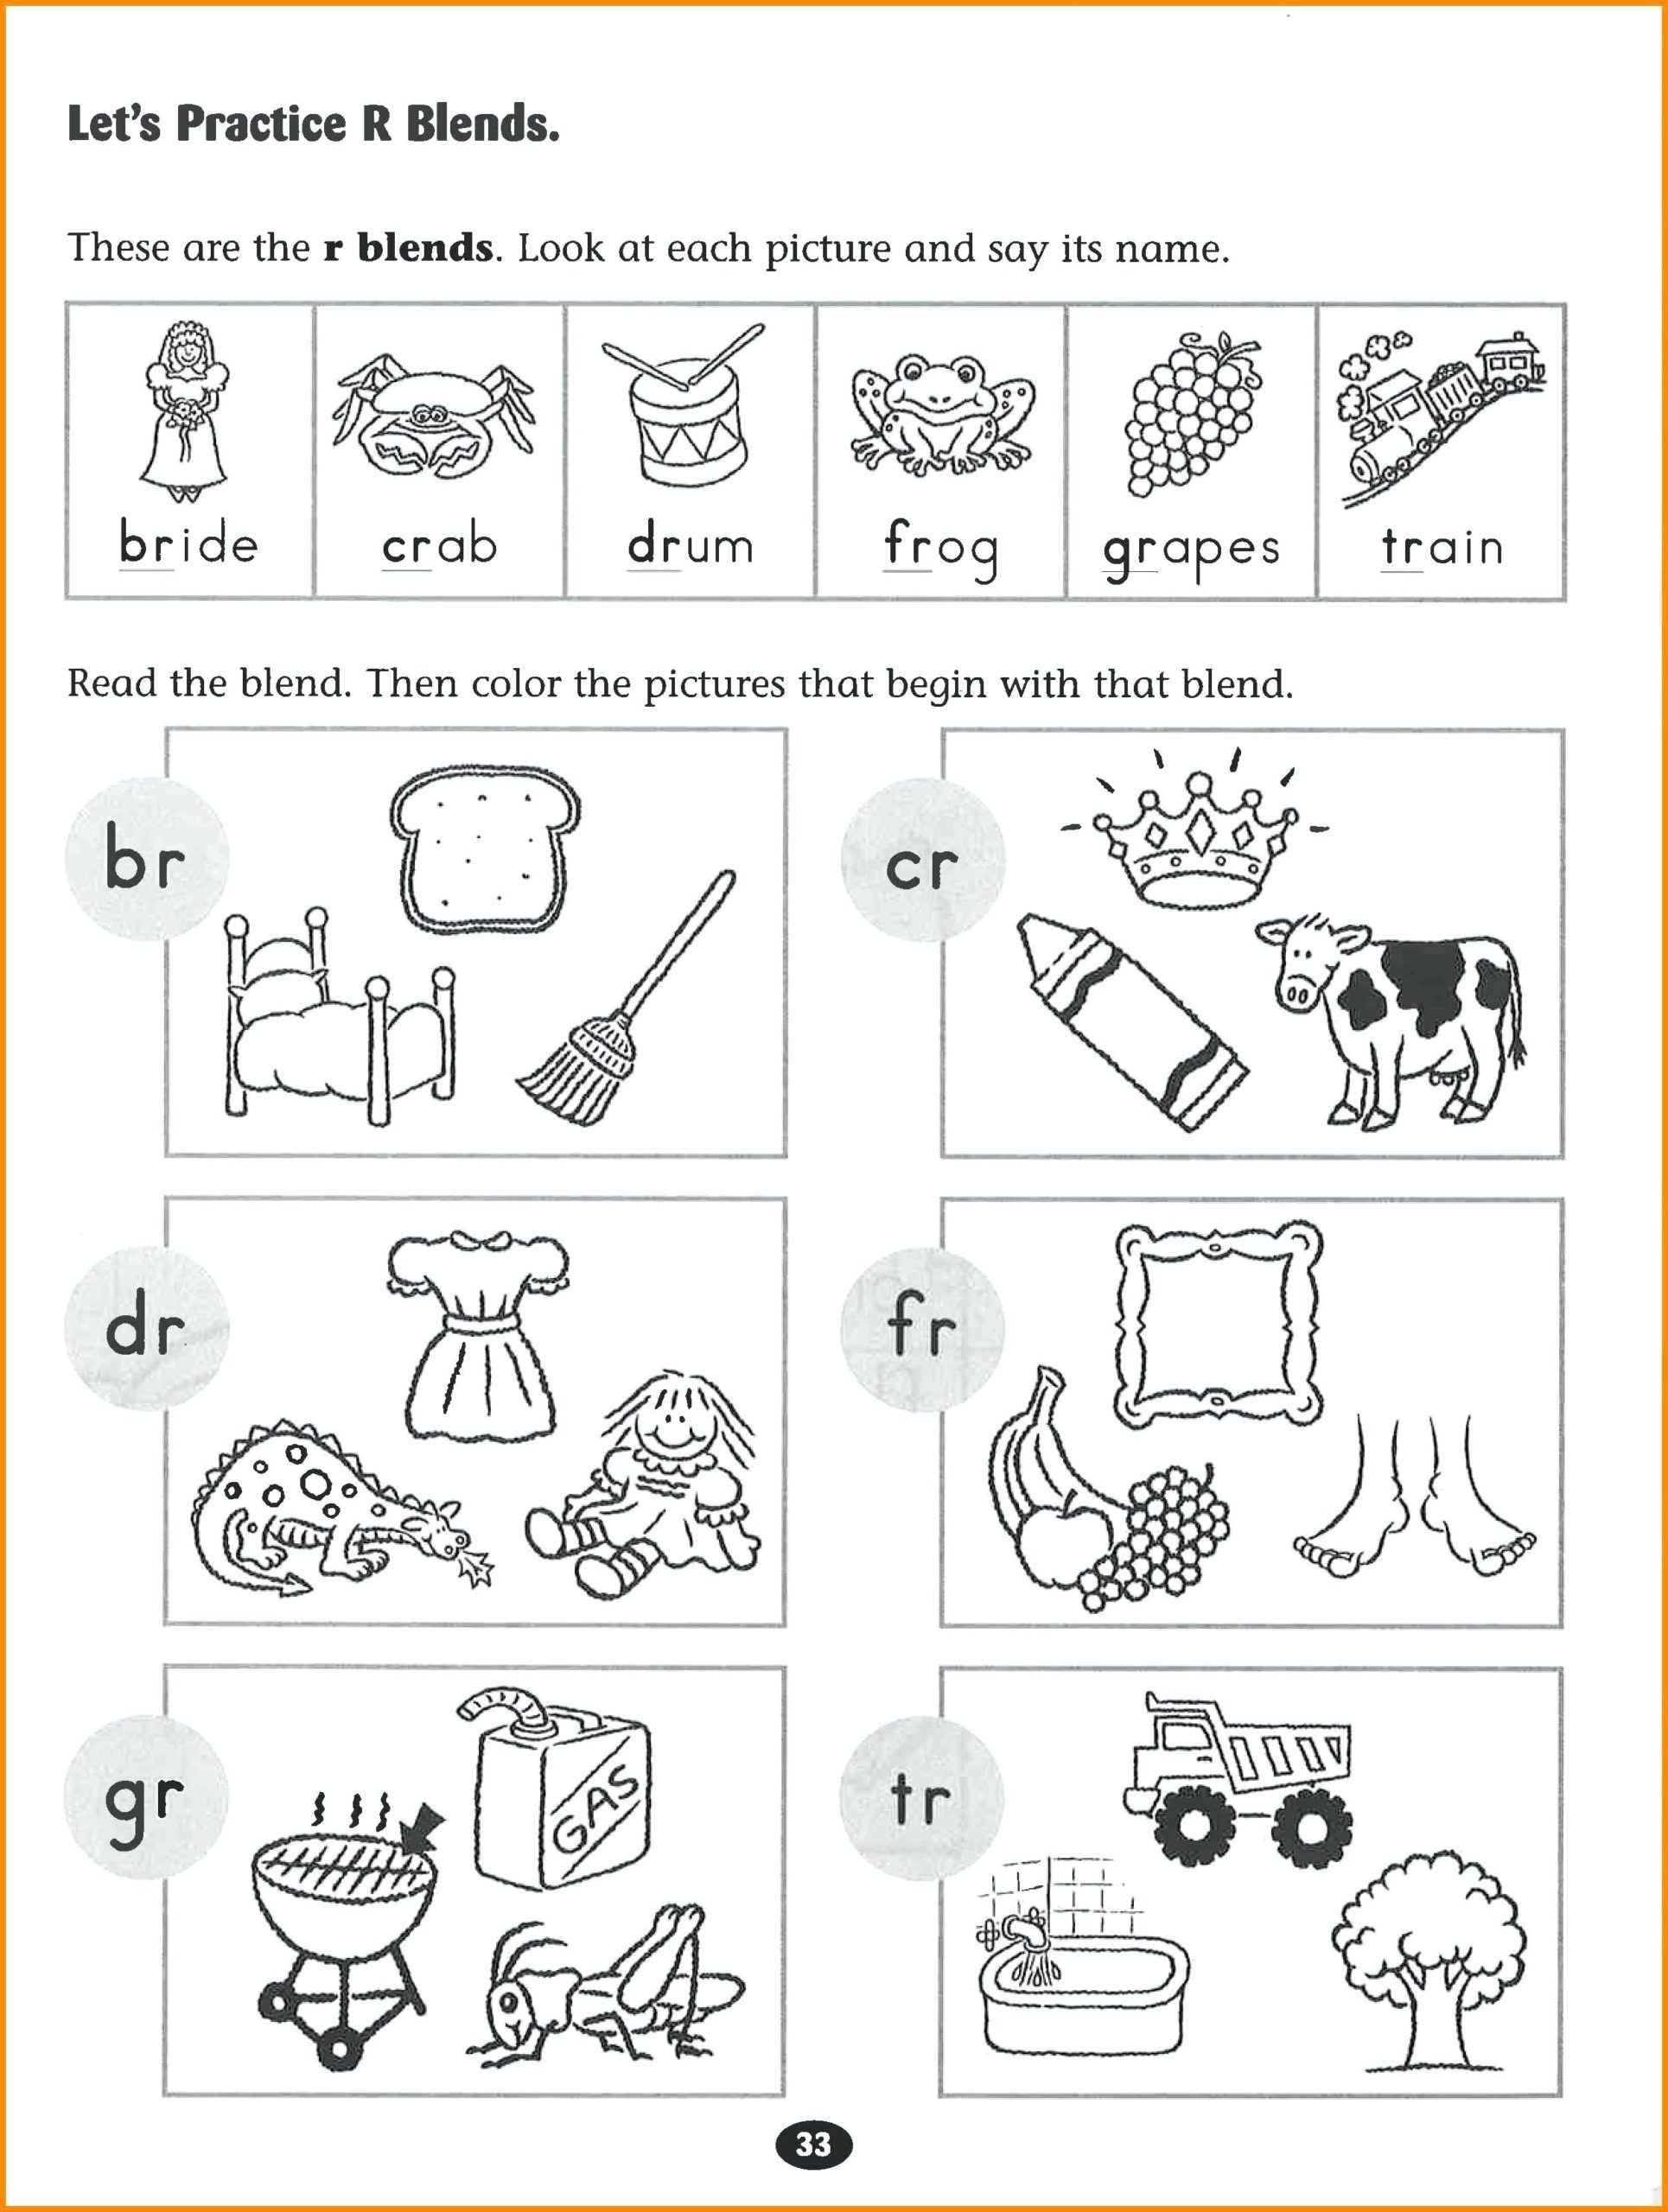 Zane Bloser Handwriting Worksheets Worksheet English for Kid Beginners Zaner Bloser Cursive